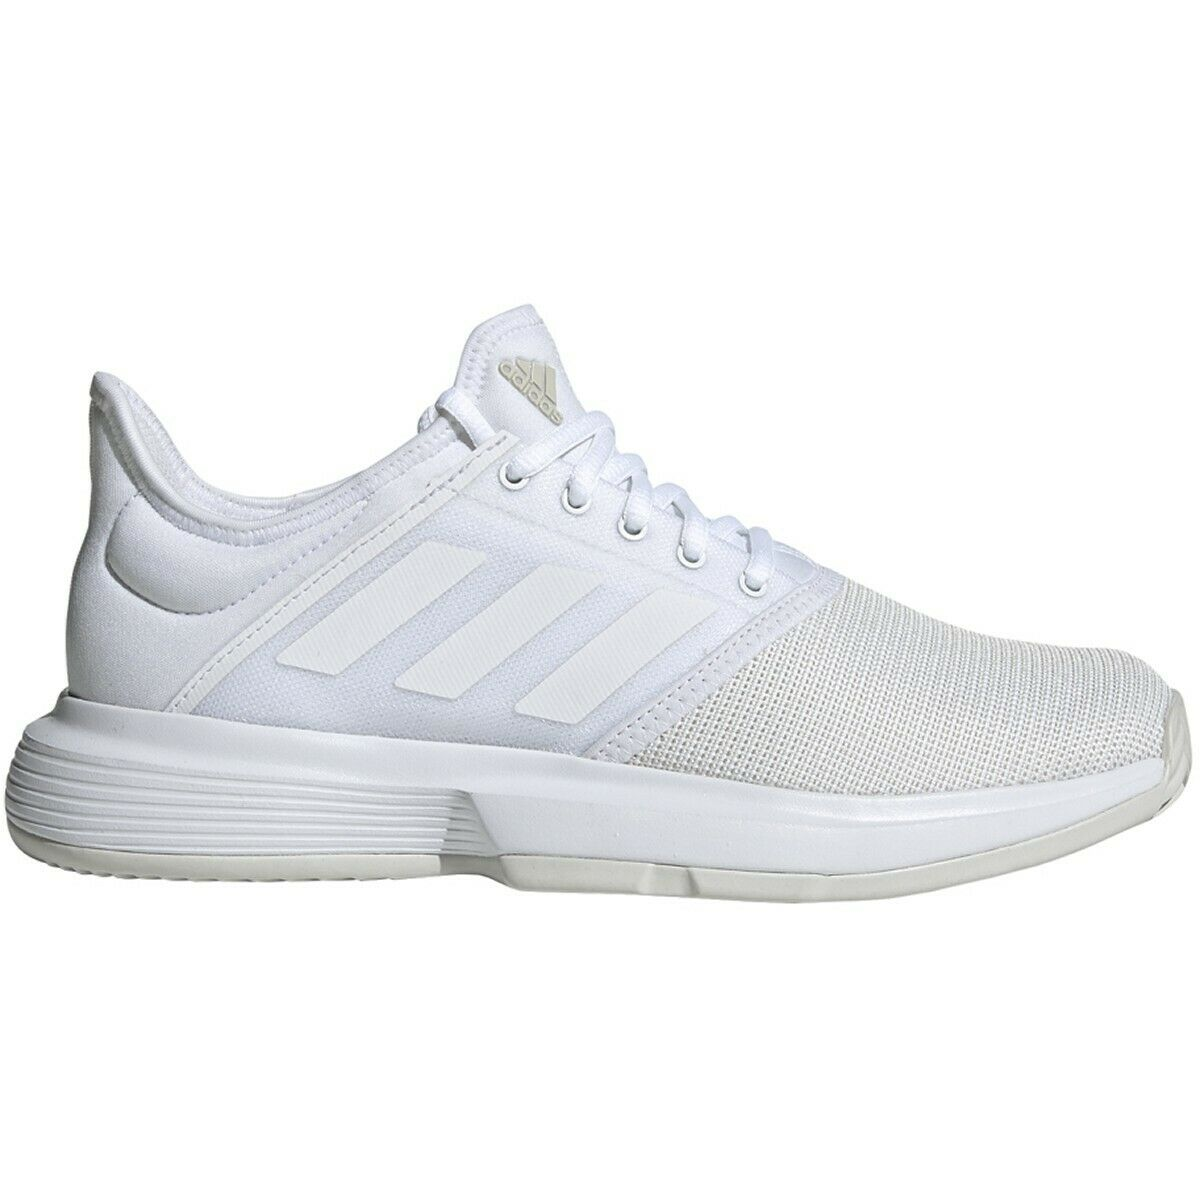 Womens Adidas GameCourt Wide White Athletic Tennis Court Sport Shoes G26825 7-9